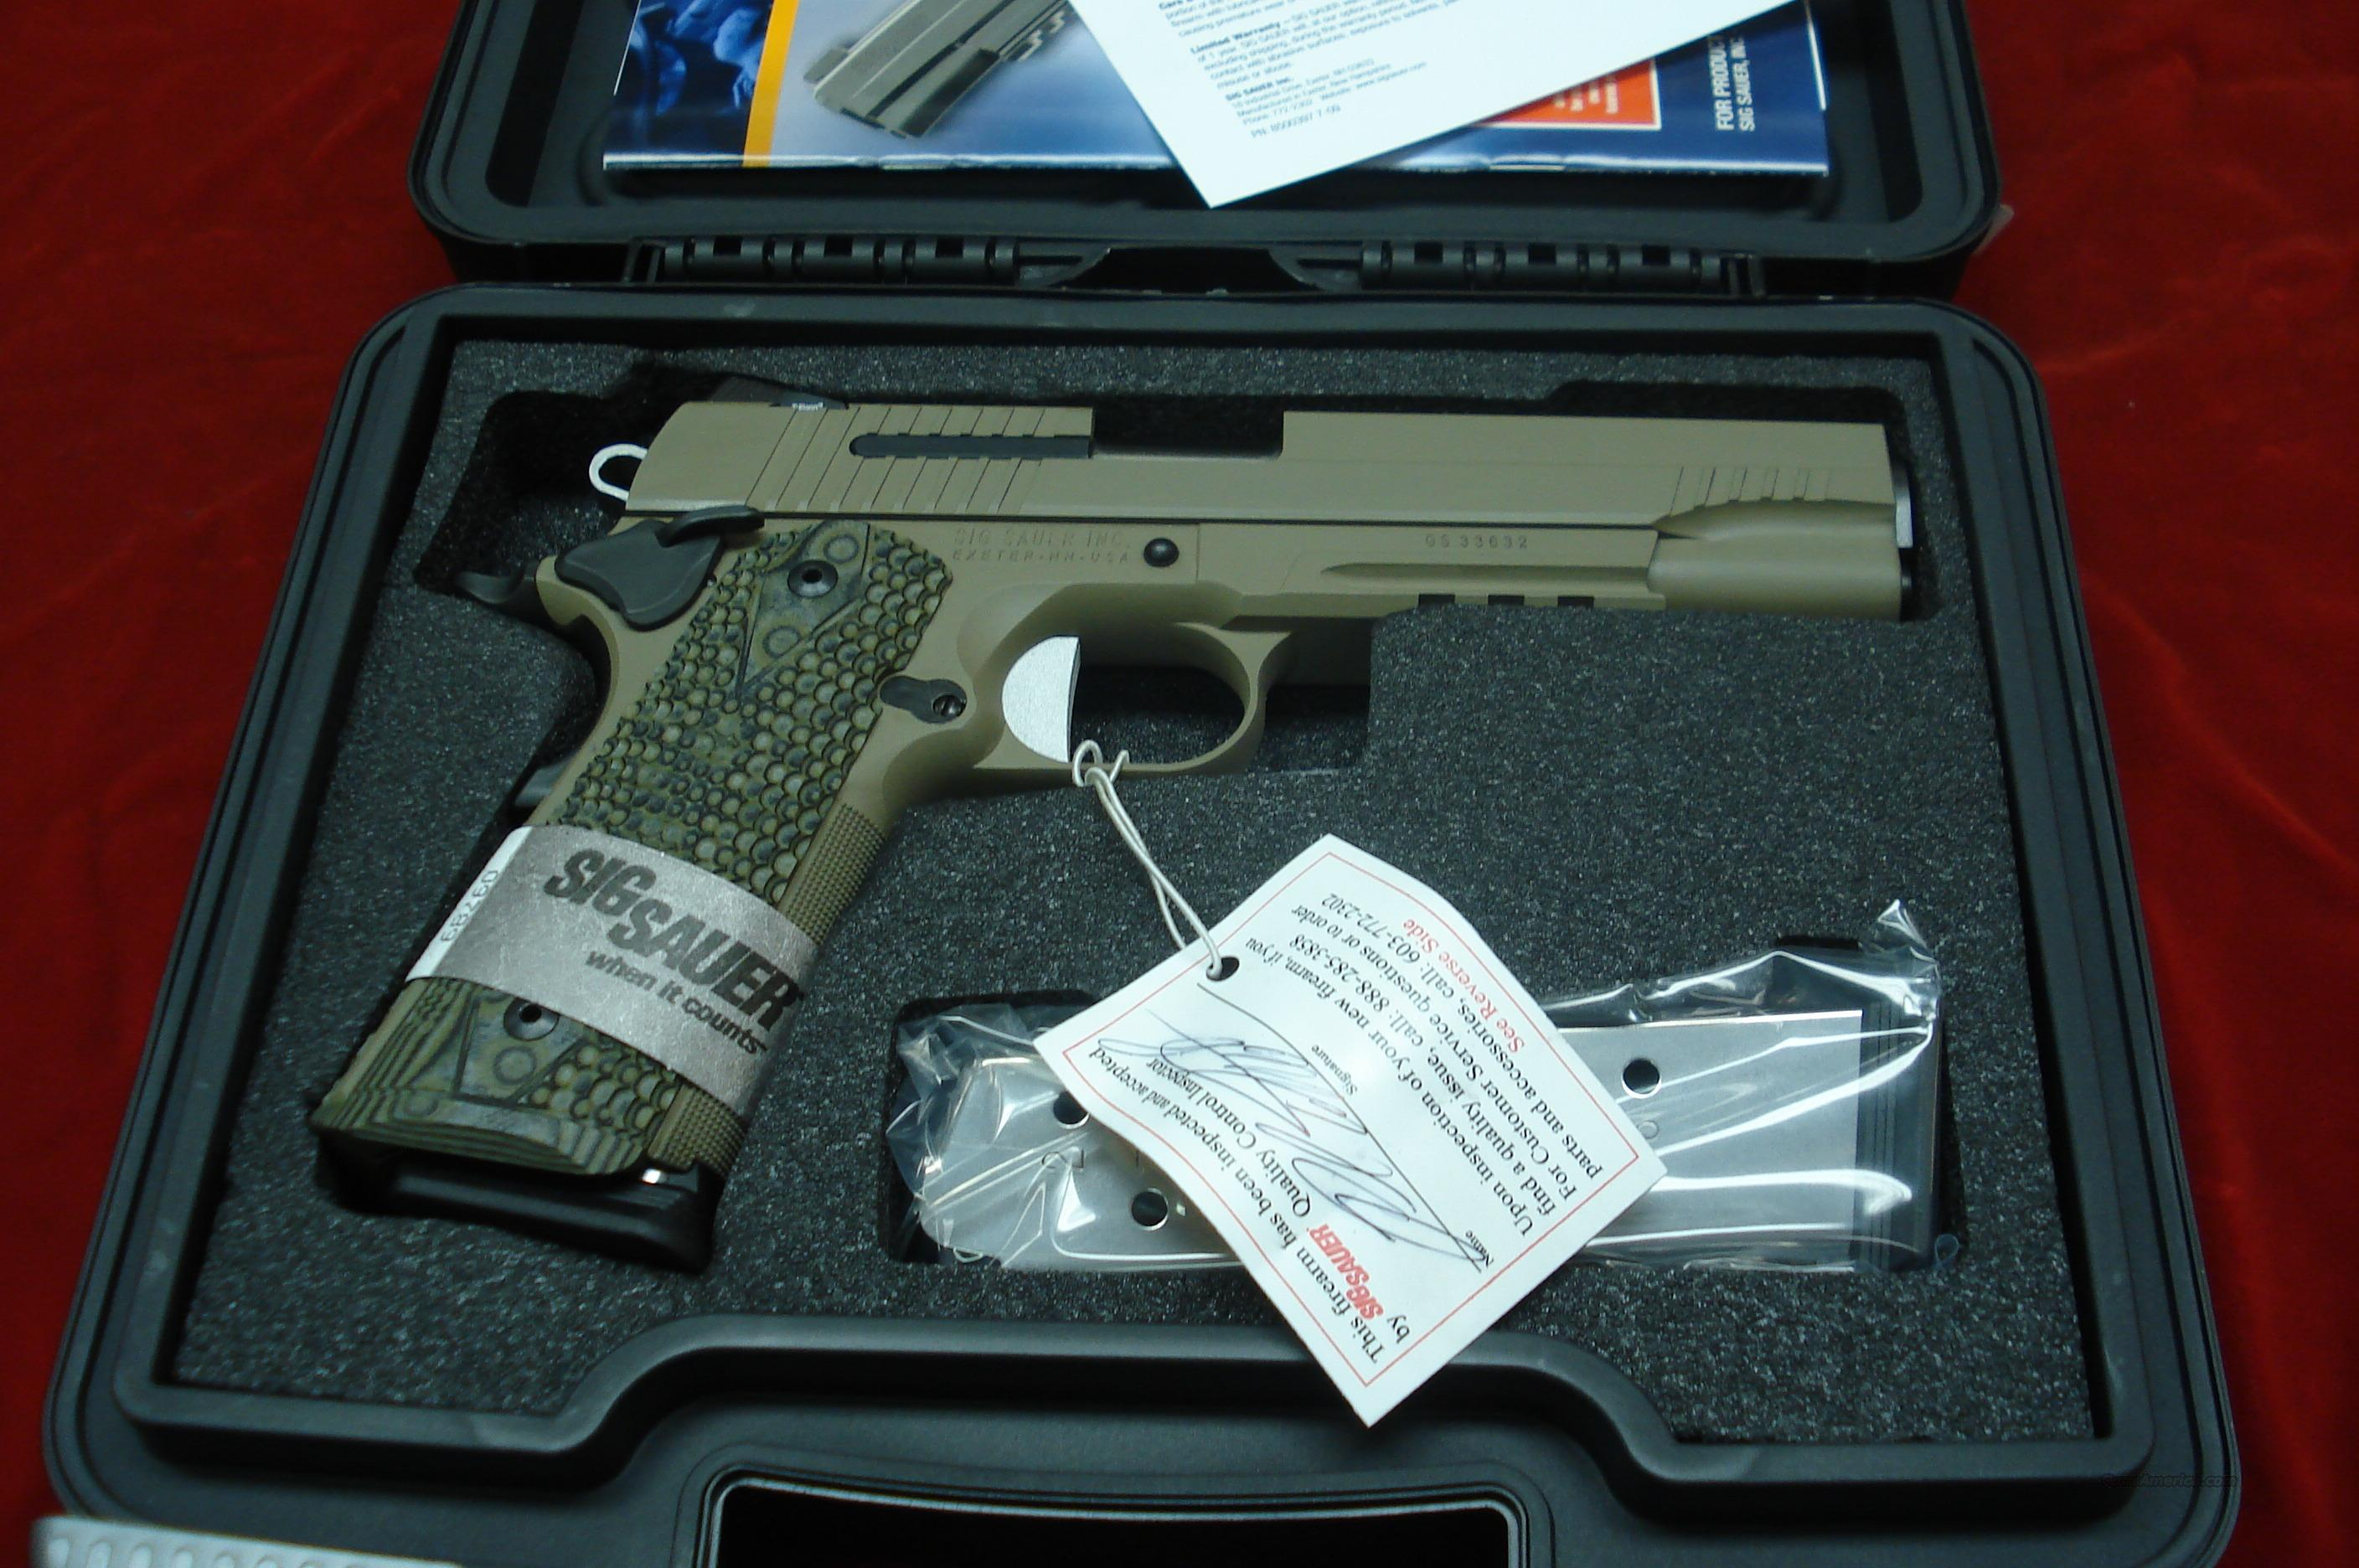 SIG SAUER 1911 SCORPION FLAT DARK EARTH WITH TAC RAIL AND NIGHT SIGHTS NEW  Guns > Pistols > Sig - Sauer/Sigarms Pistols > 1911